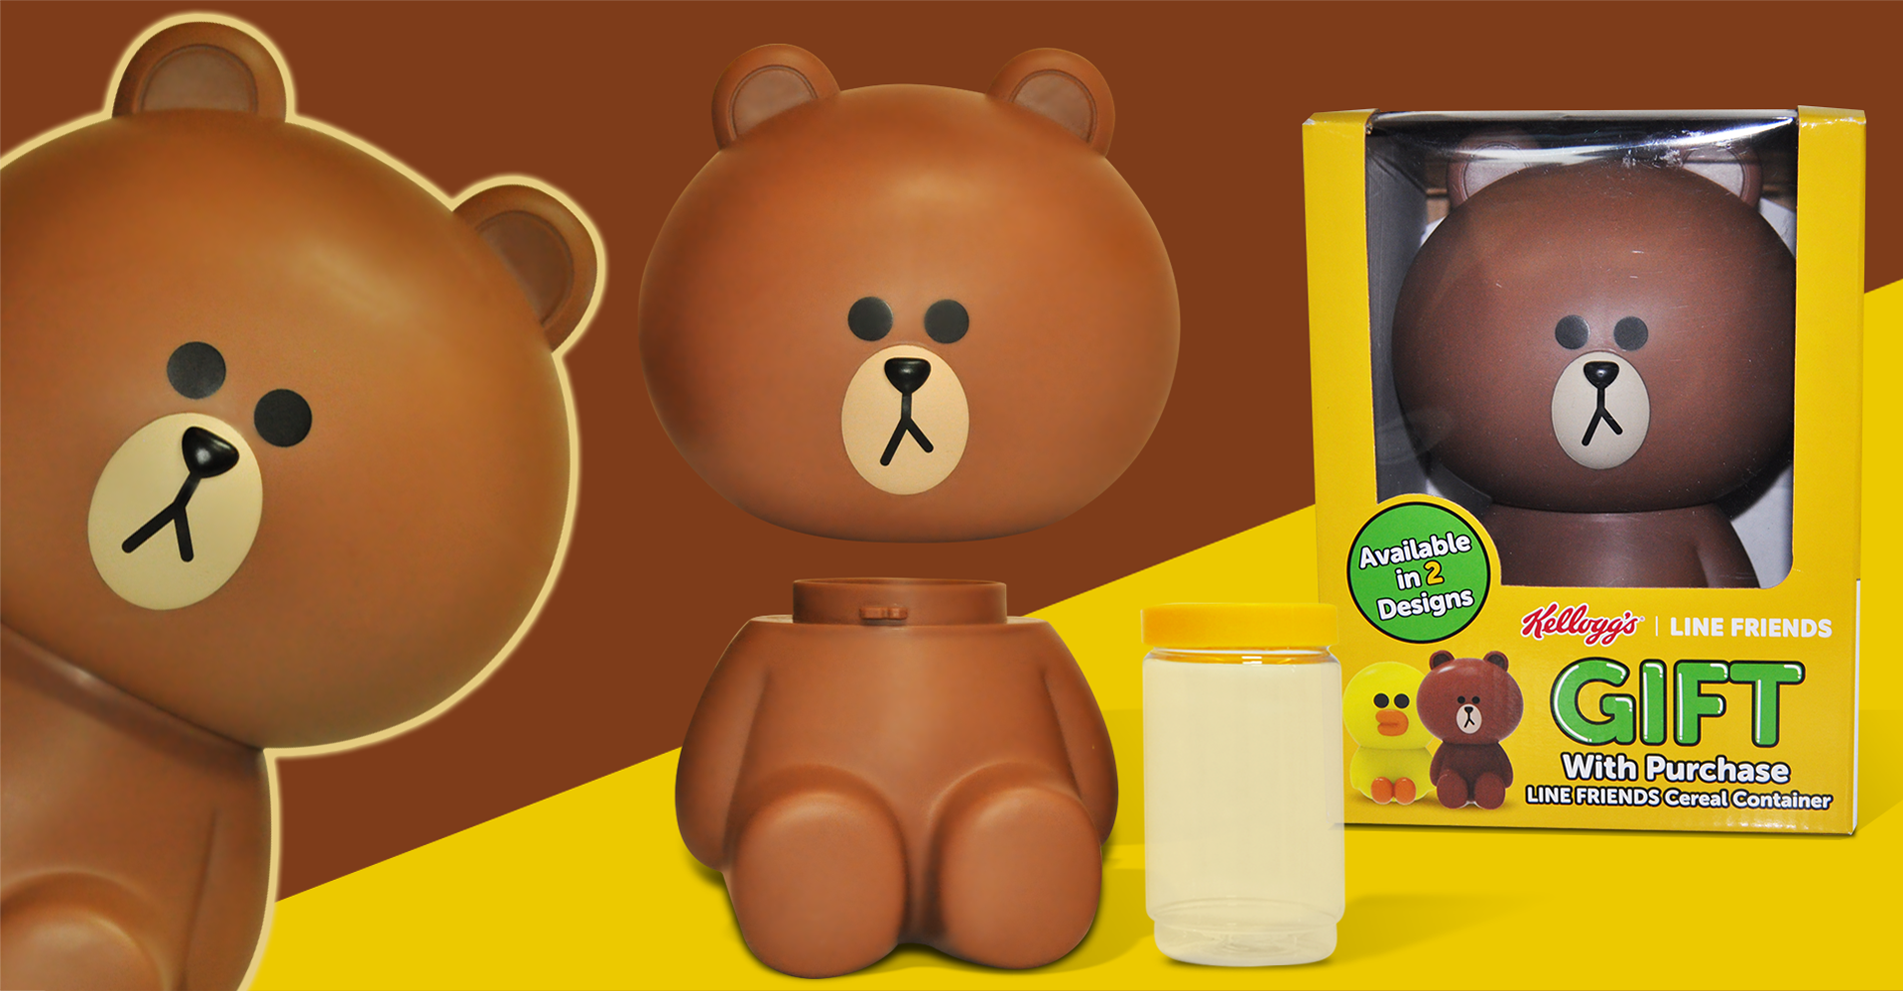 Line friends Container Gift with purchase